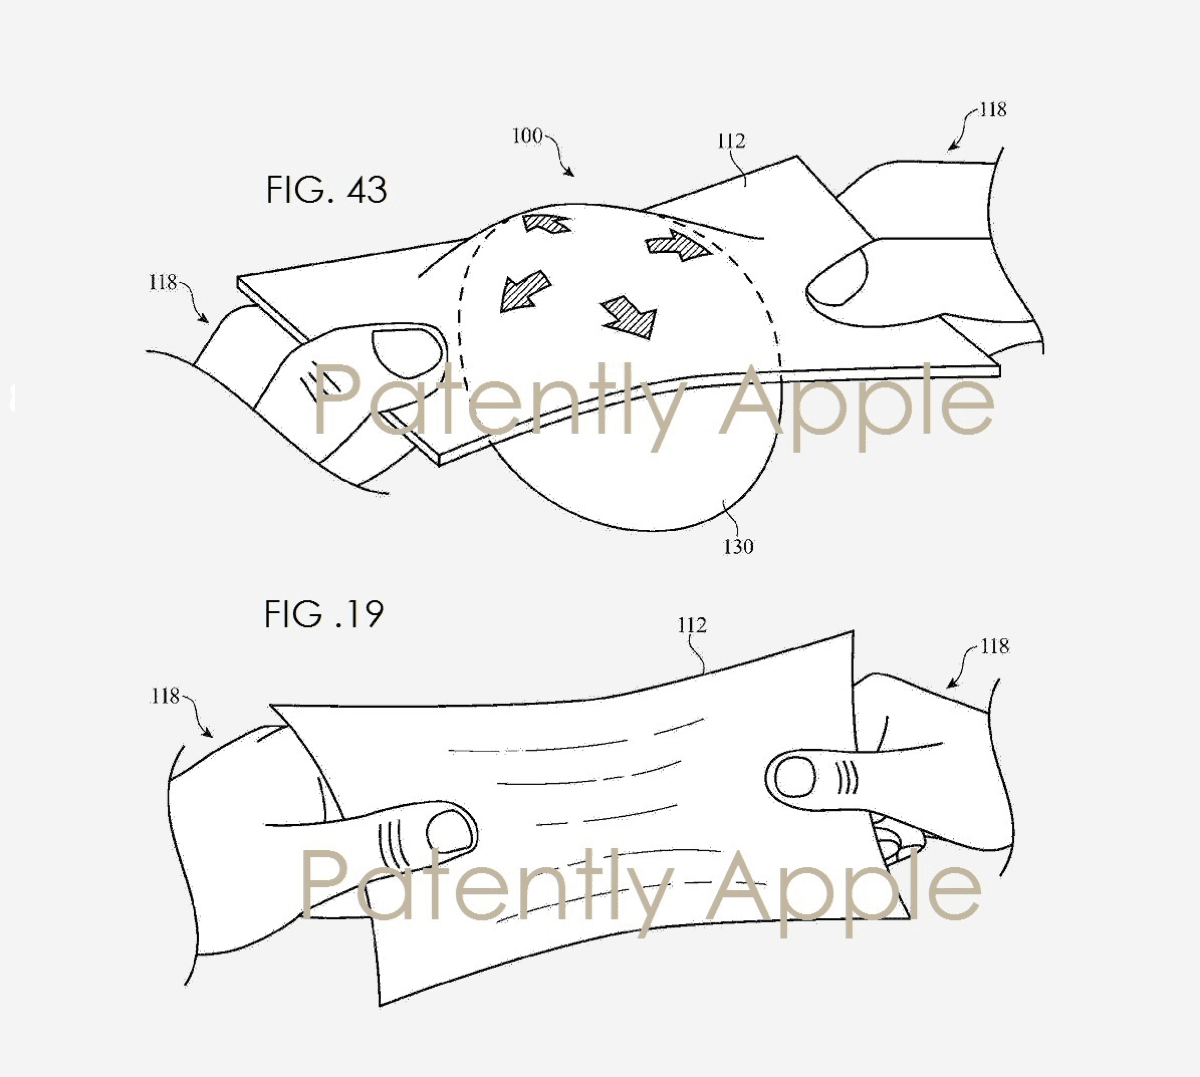 image of the apple smart clothing patent